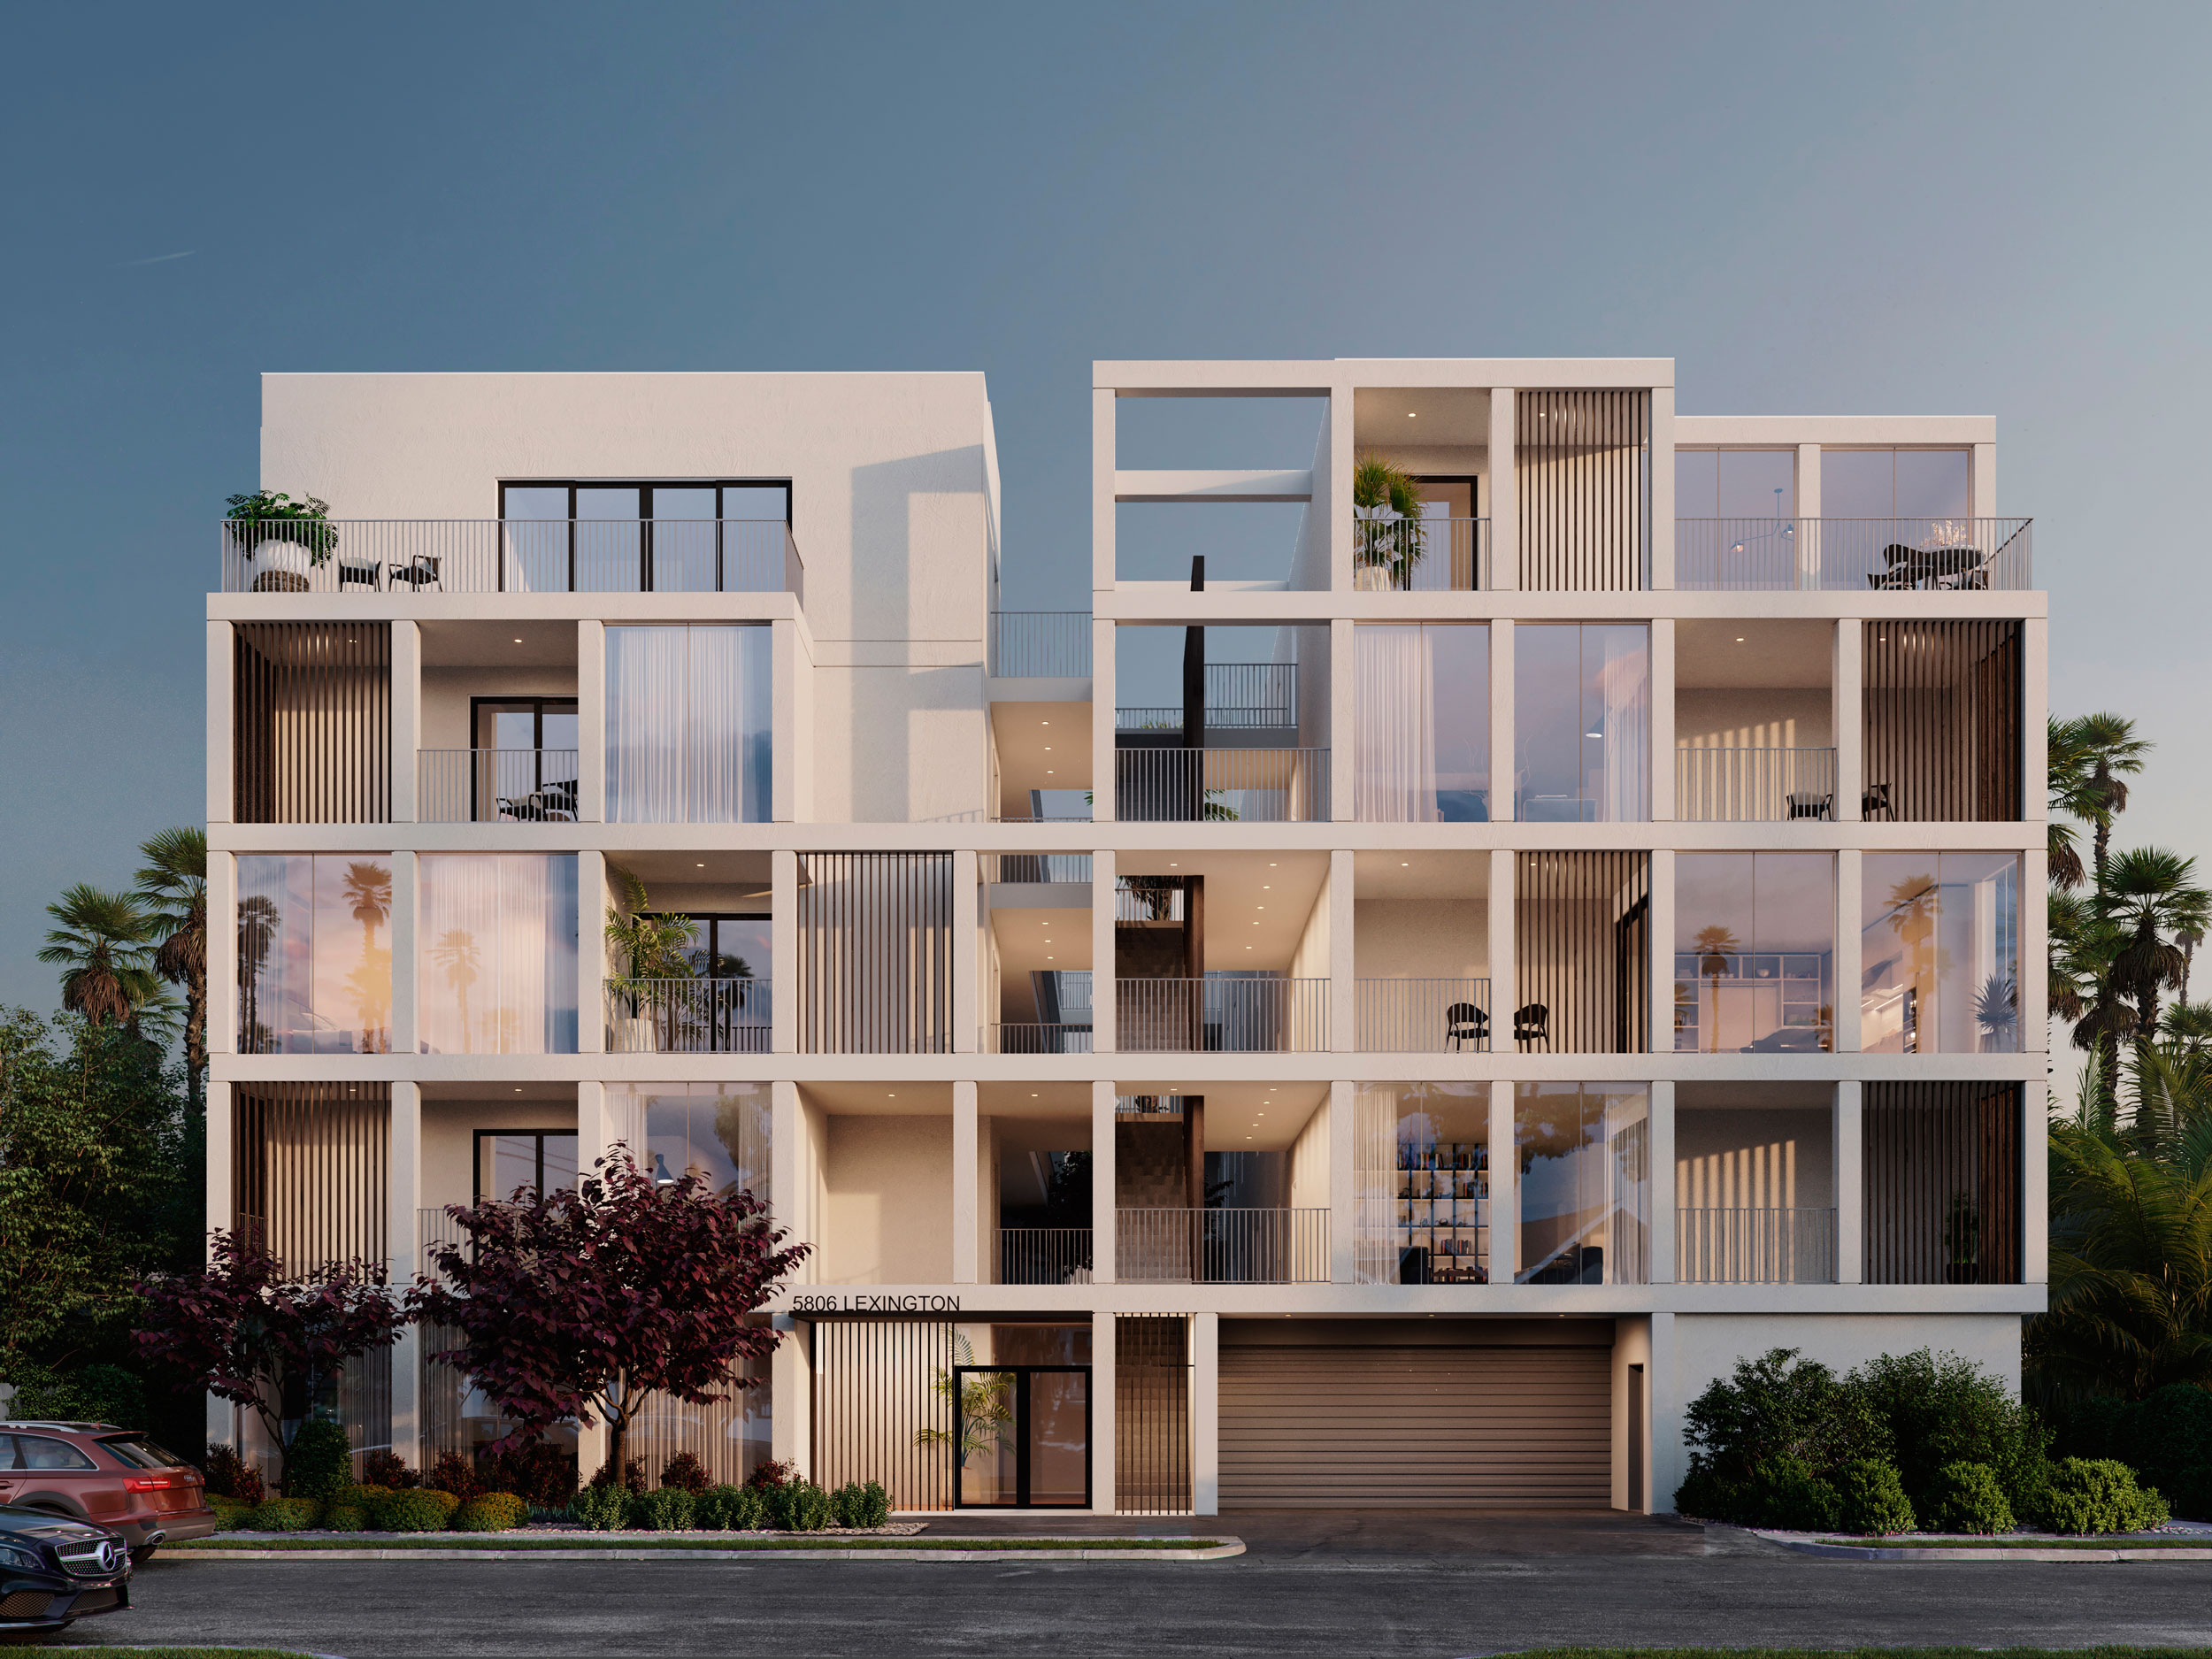 hollywood lexington apartments architecture rendering